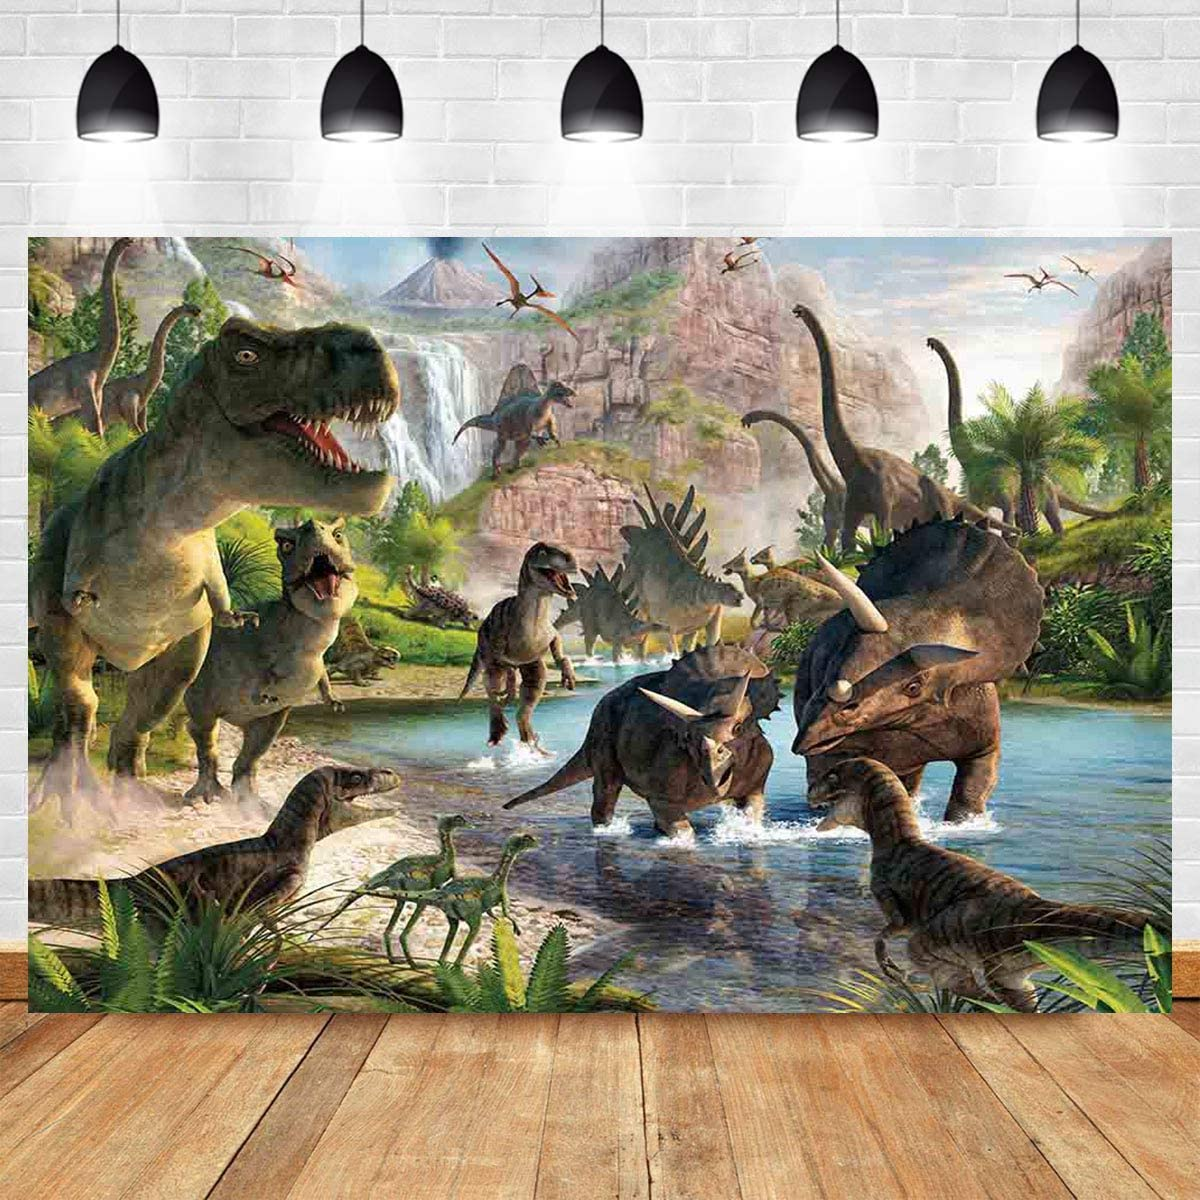 6x6FT Vinyl Backdrop Photographer,Jurassic,Pop Art Dinosaurs Walking Background for Party Home Decor Outdoorsy Theme Shoot Props